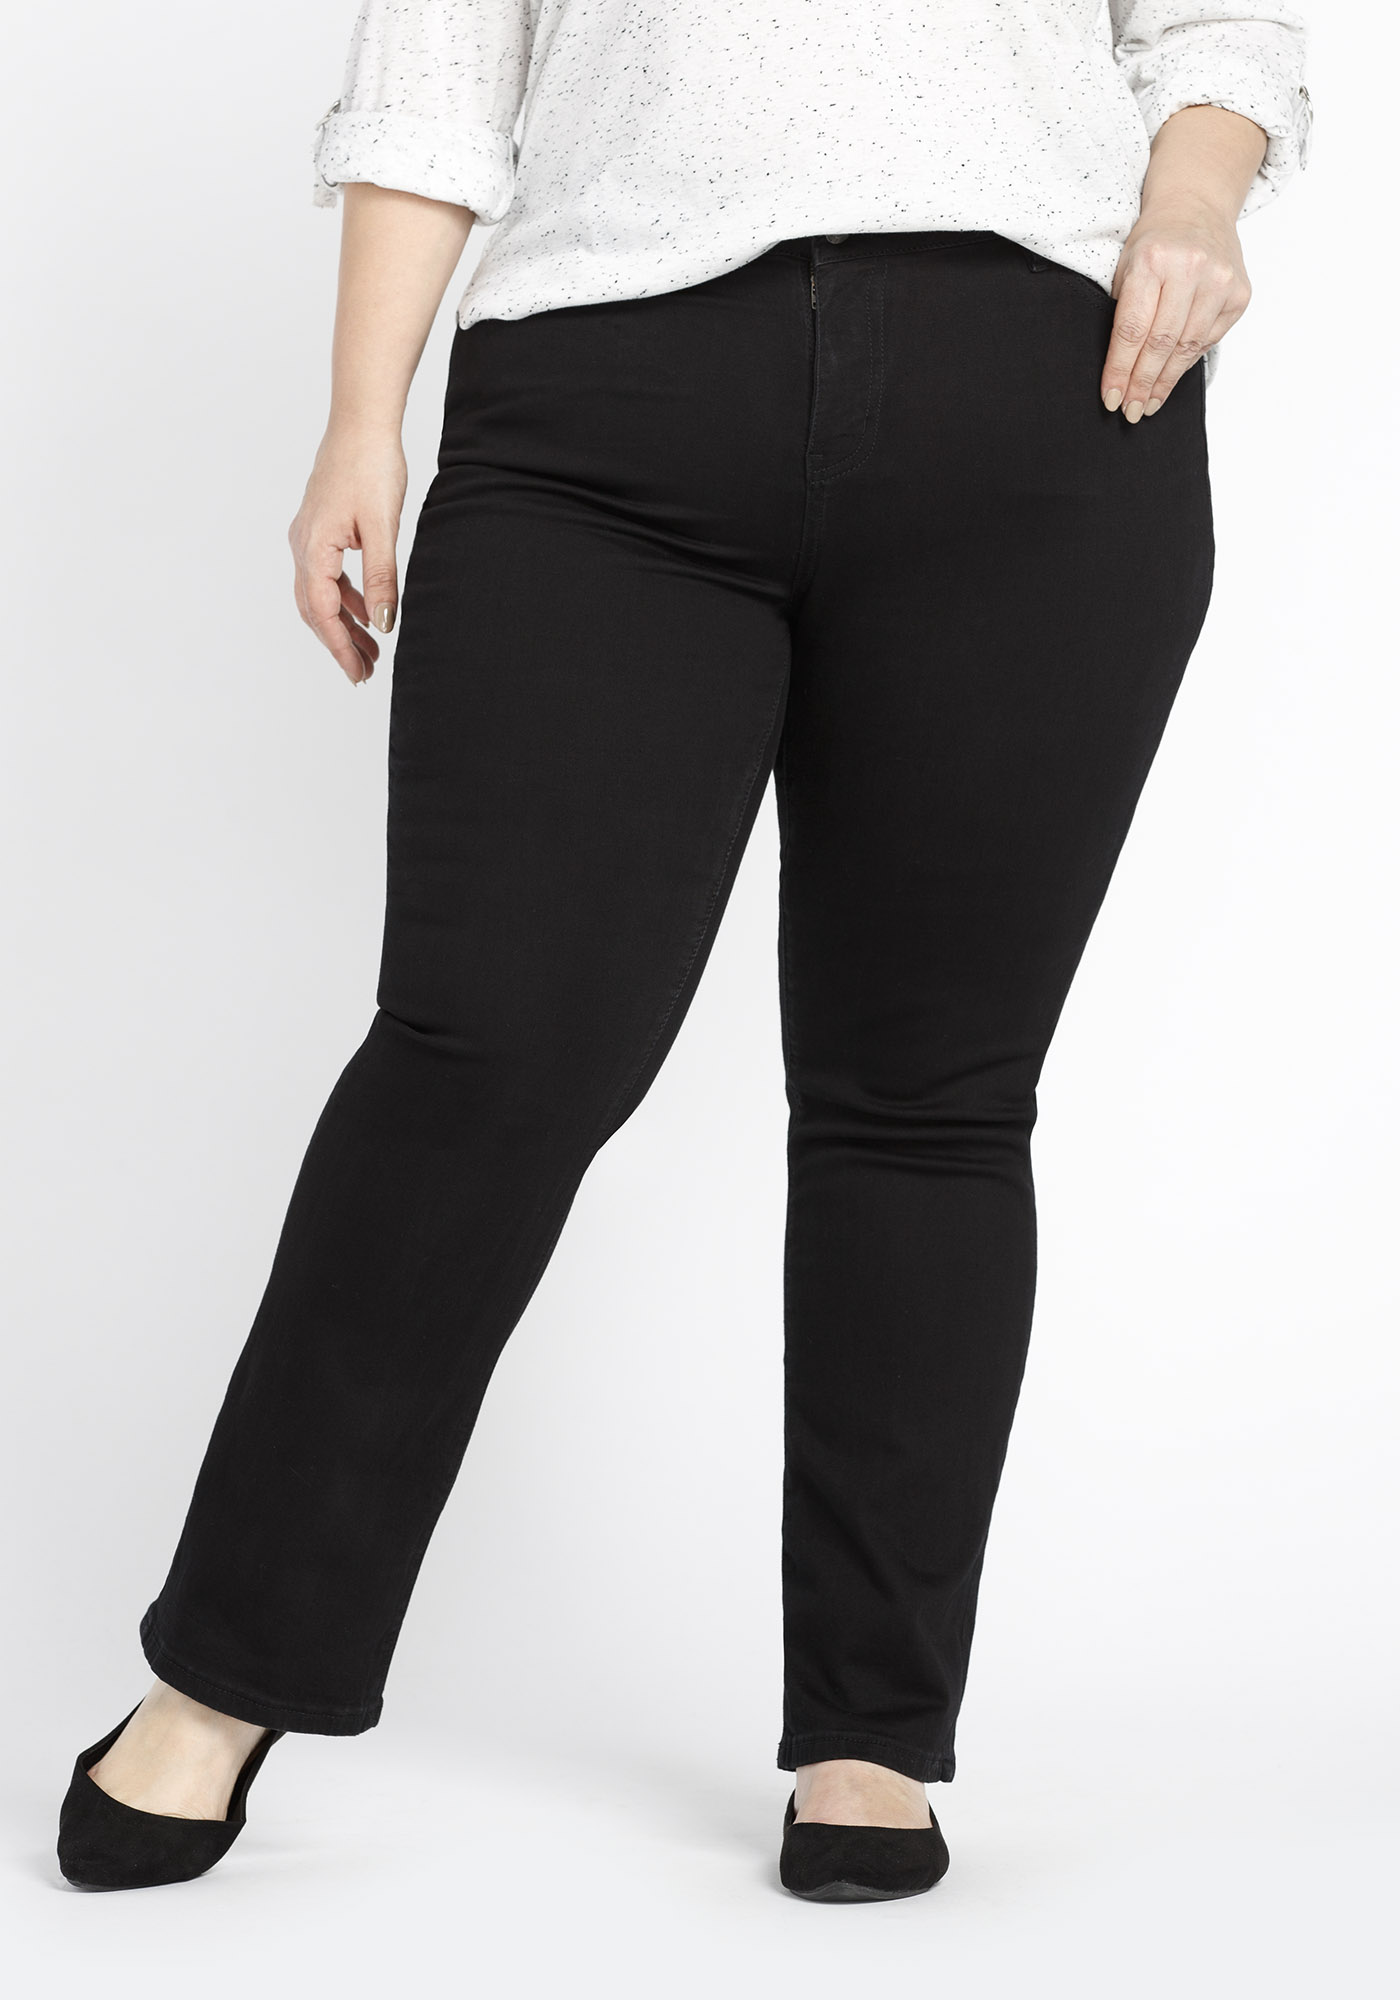 Shop for baby black pants online at Target. Free shipping on purchases over $35 and save 5% every day with your Target REDcard.